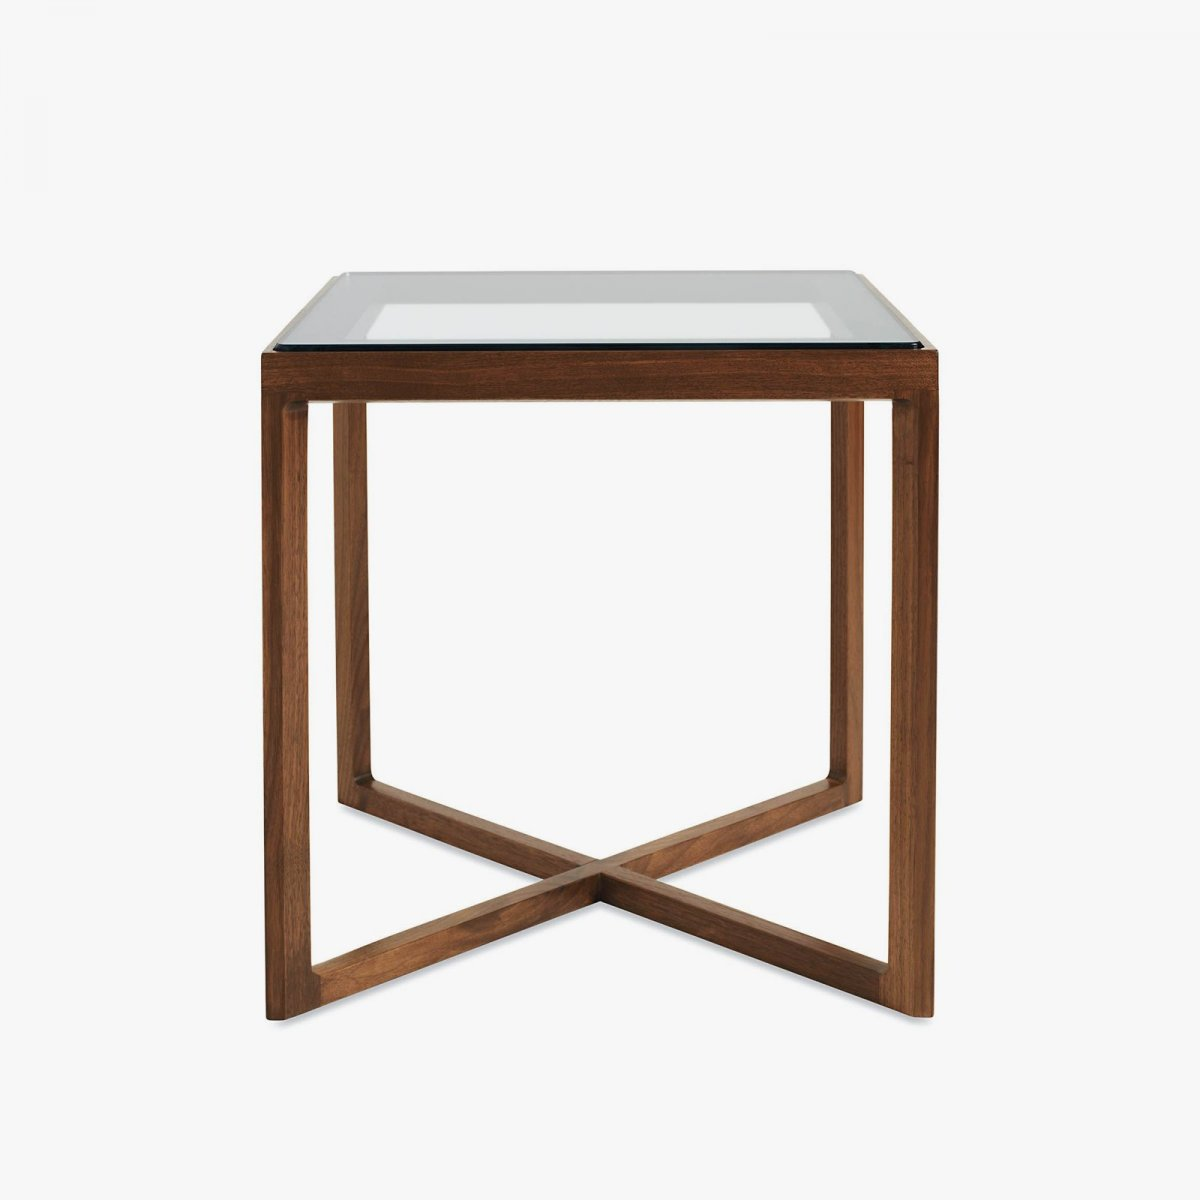 Krusin Side Table, walnut + glass.